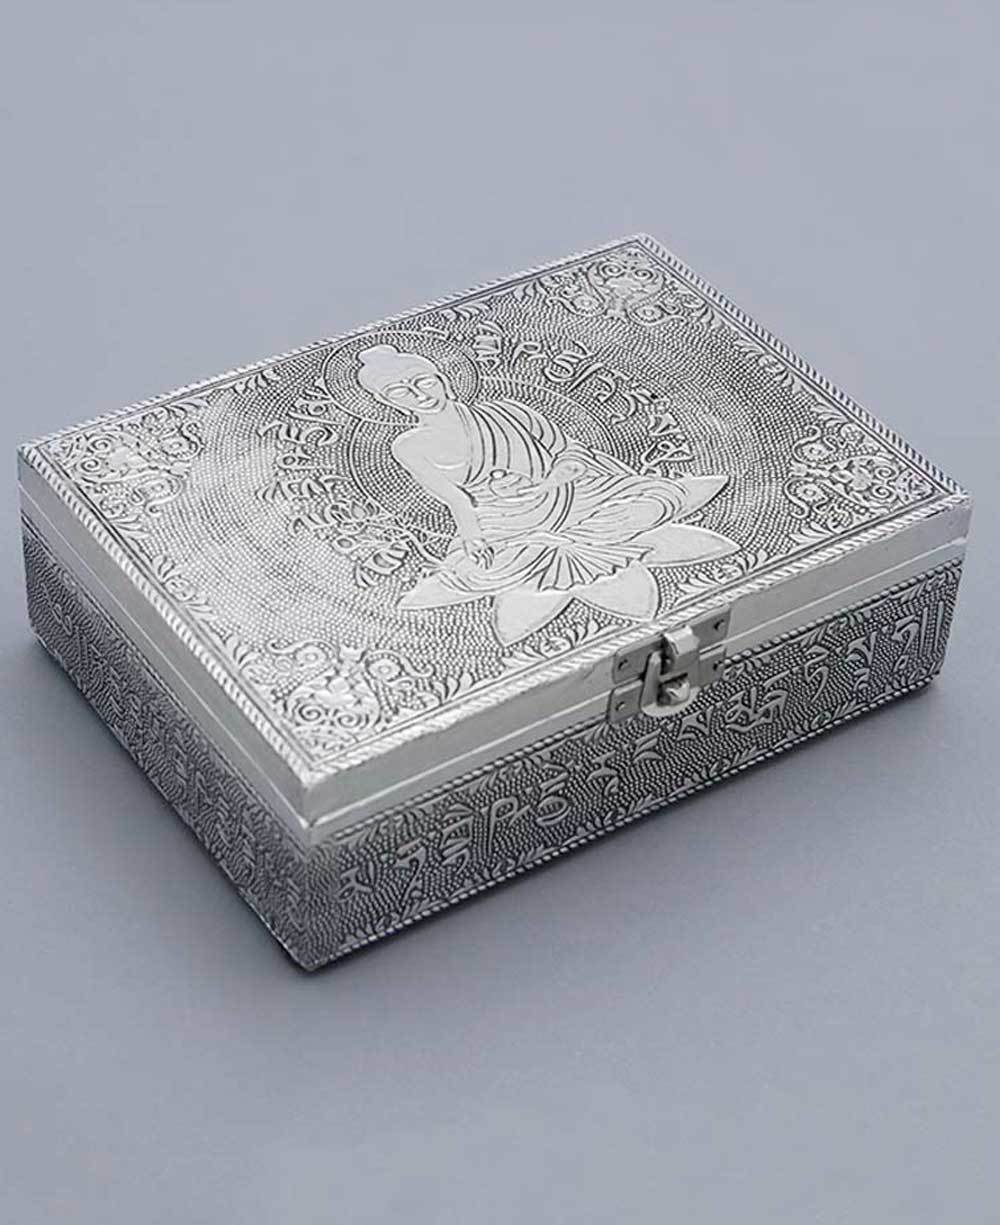 Image of Buddha Antique Style Mala Box with Tibetan Mantra